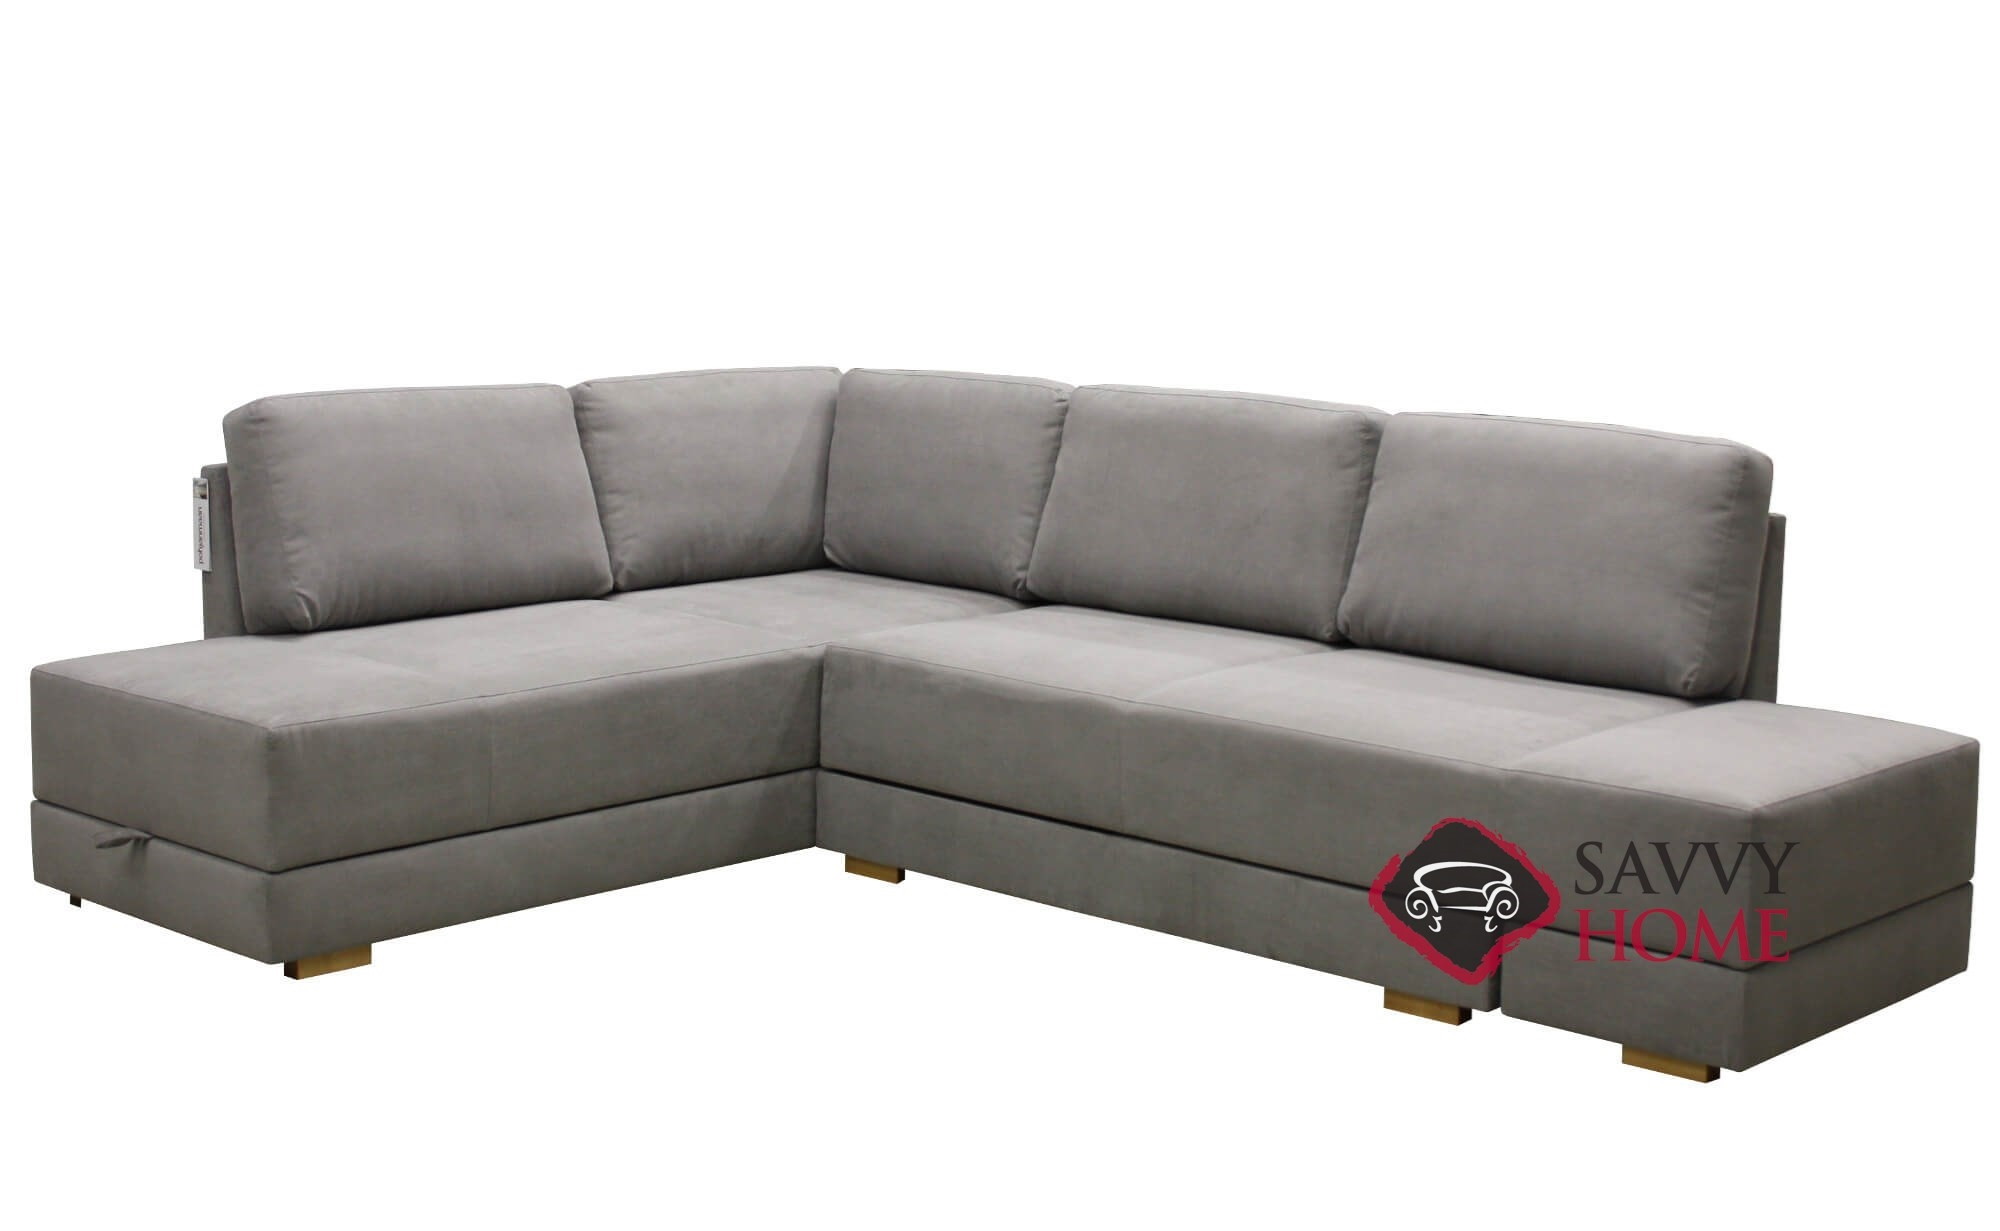 Brooklyn Fabric Sleeper Sofas Chaise Sectional by Luonto is Fully ...